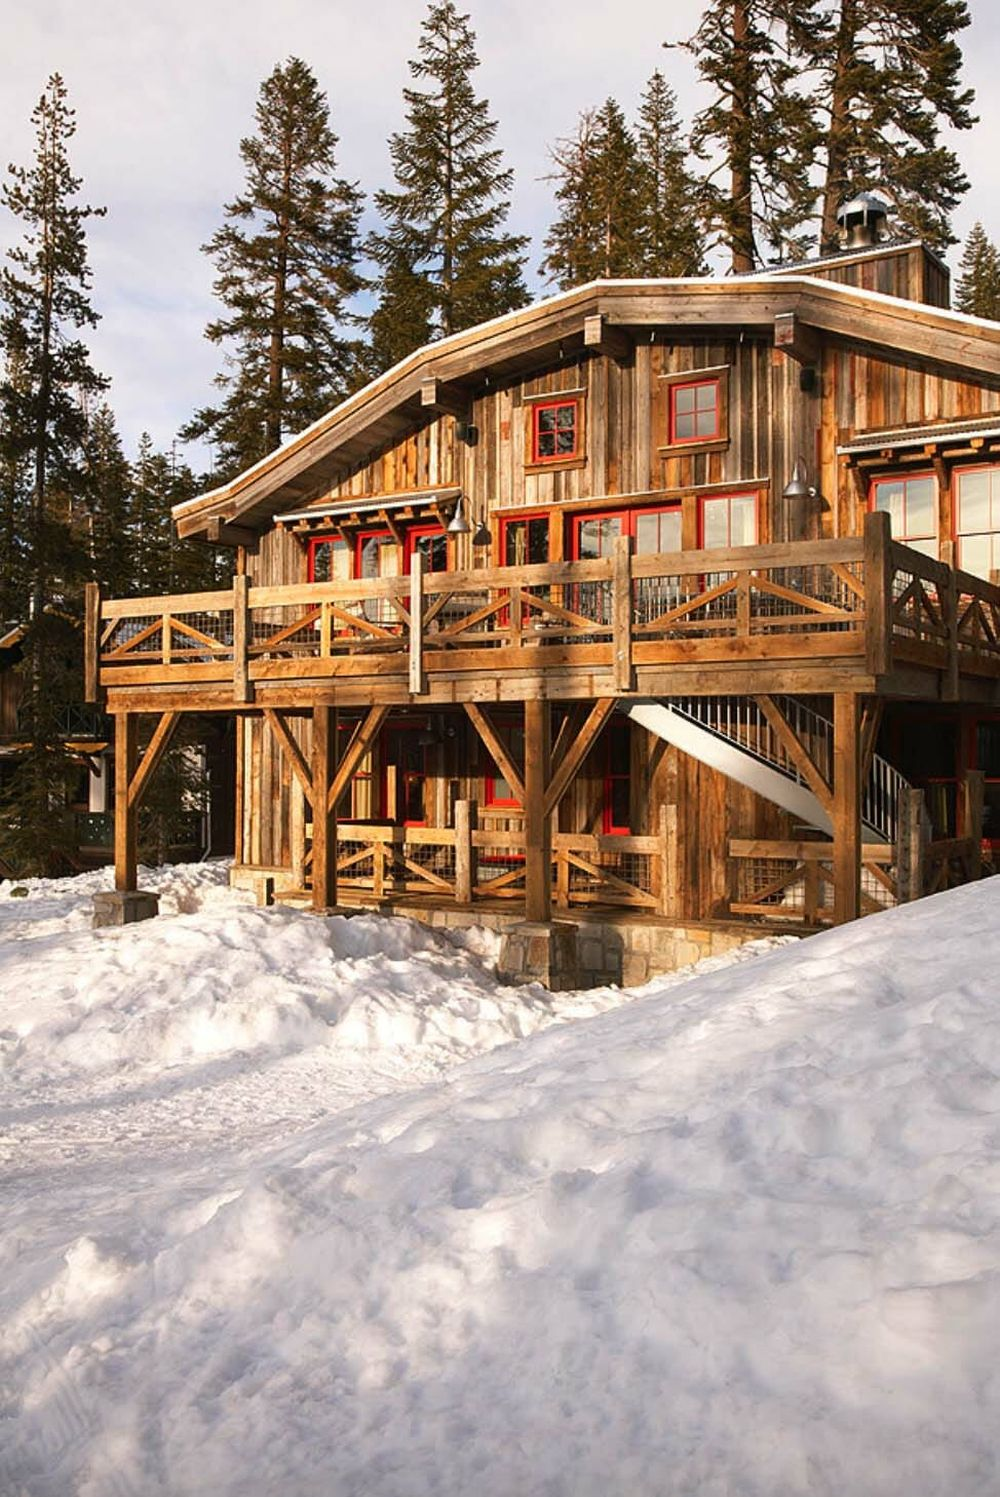 The cabin is rustic, warm and cozy and also connected to its surroundings in a seamless manner